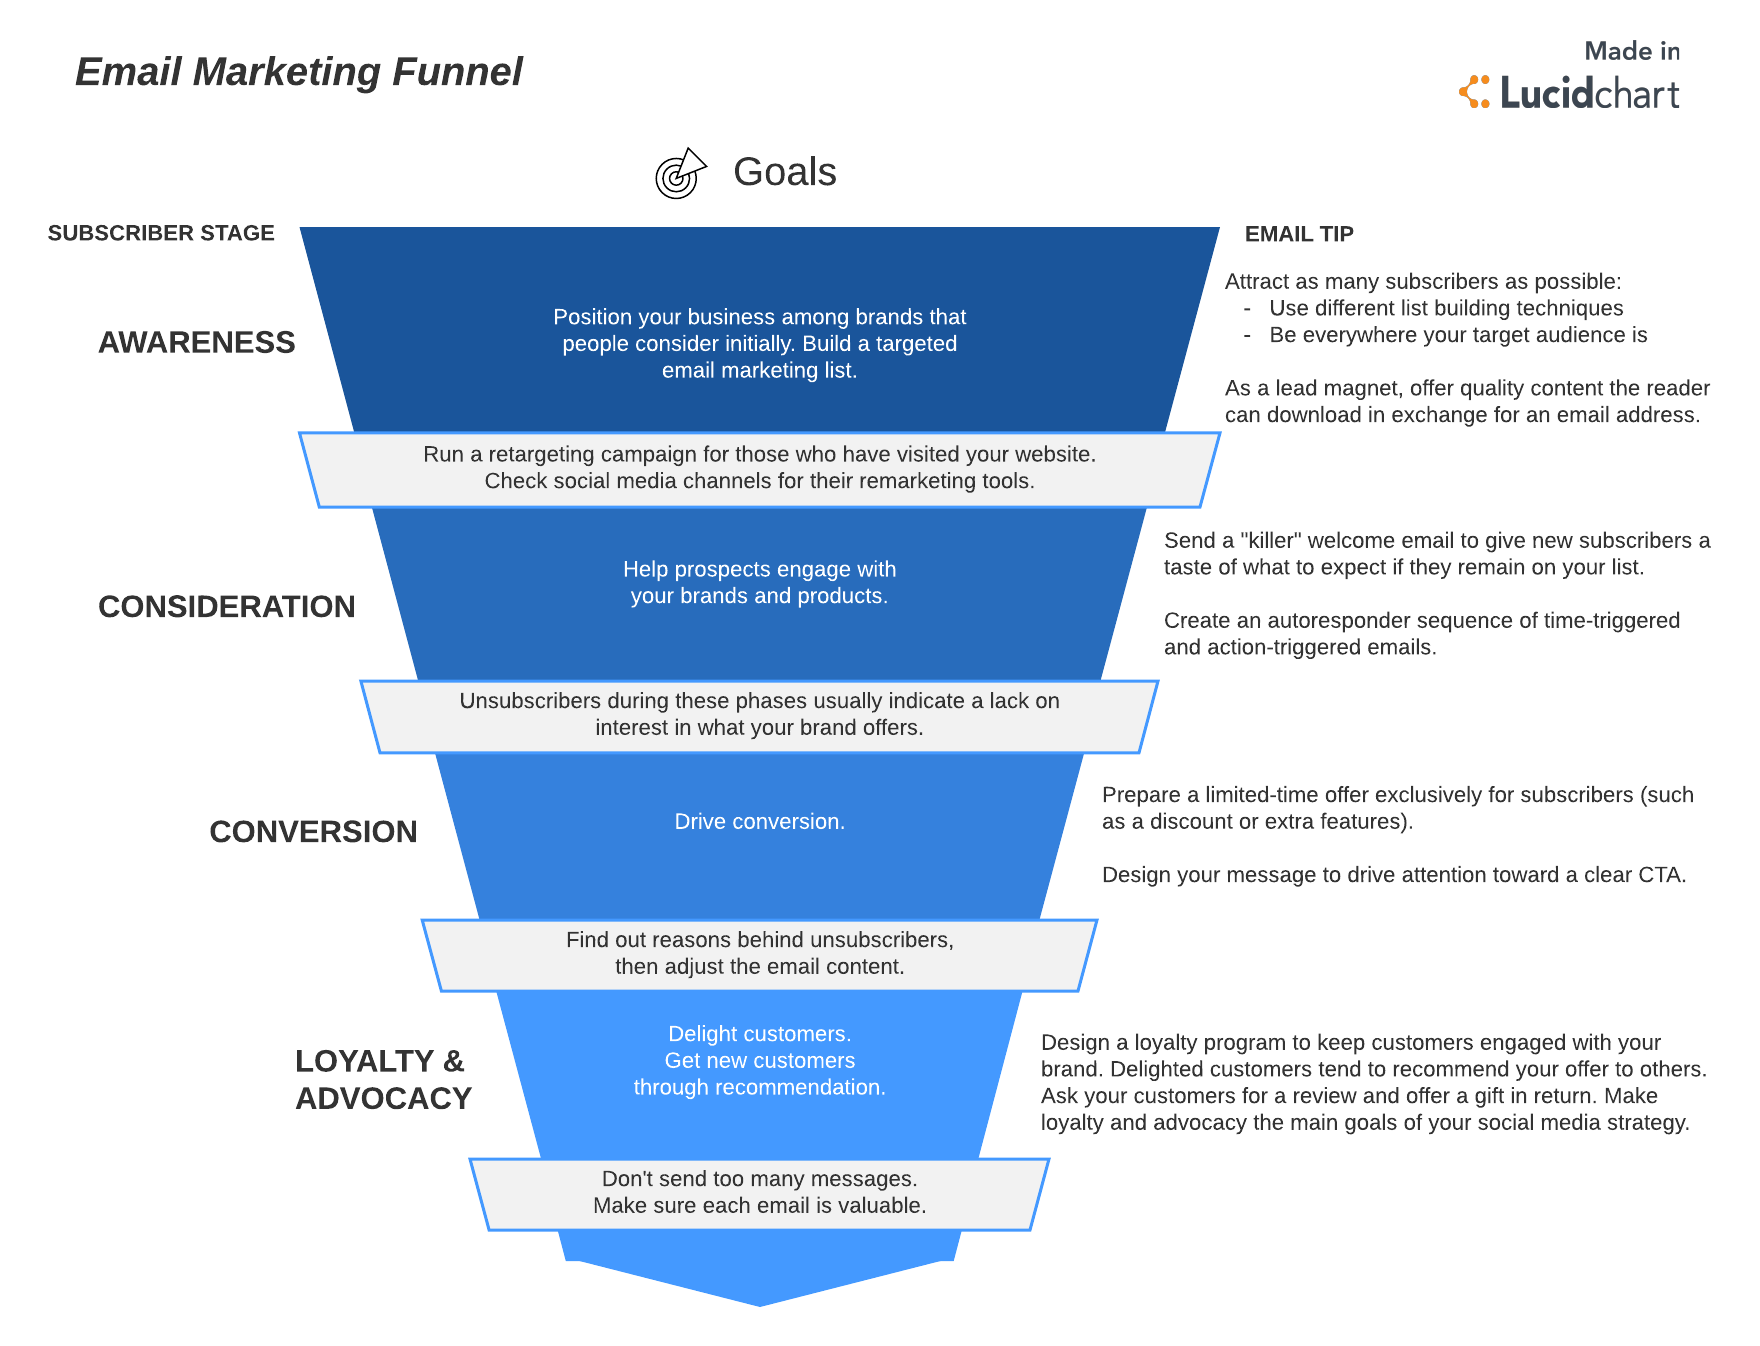 Master the 5 Step Email Marketing Funnel | Lucidchart Blog